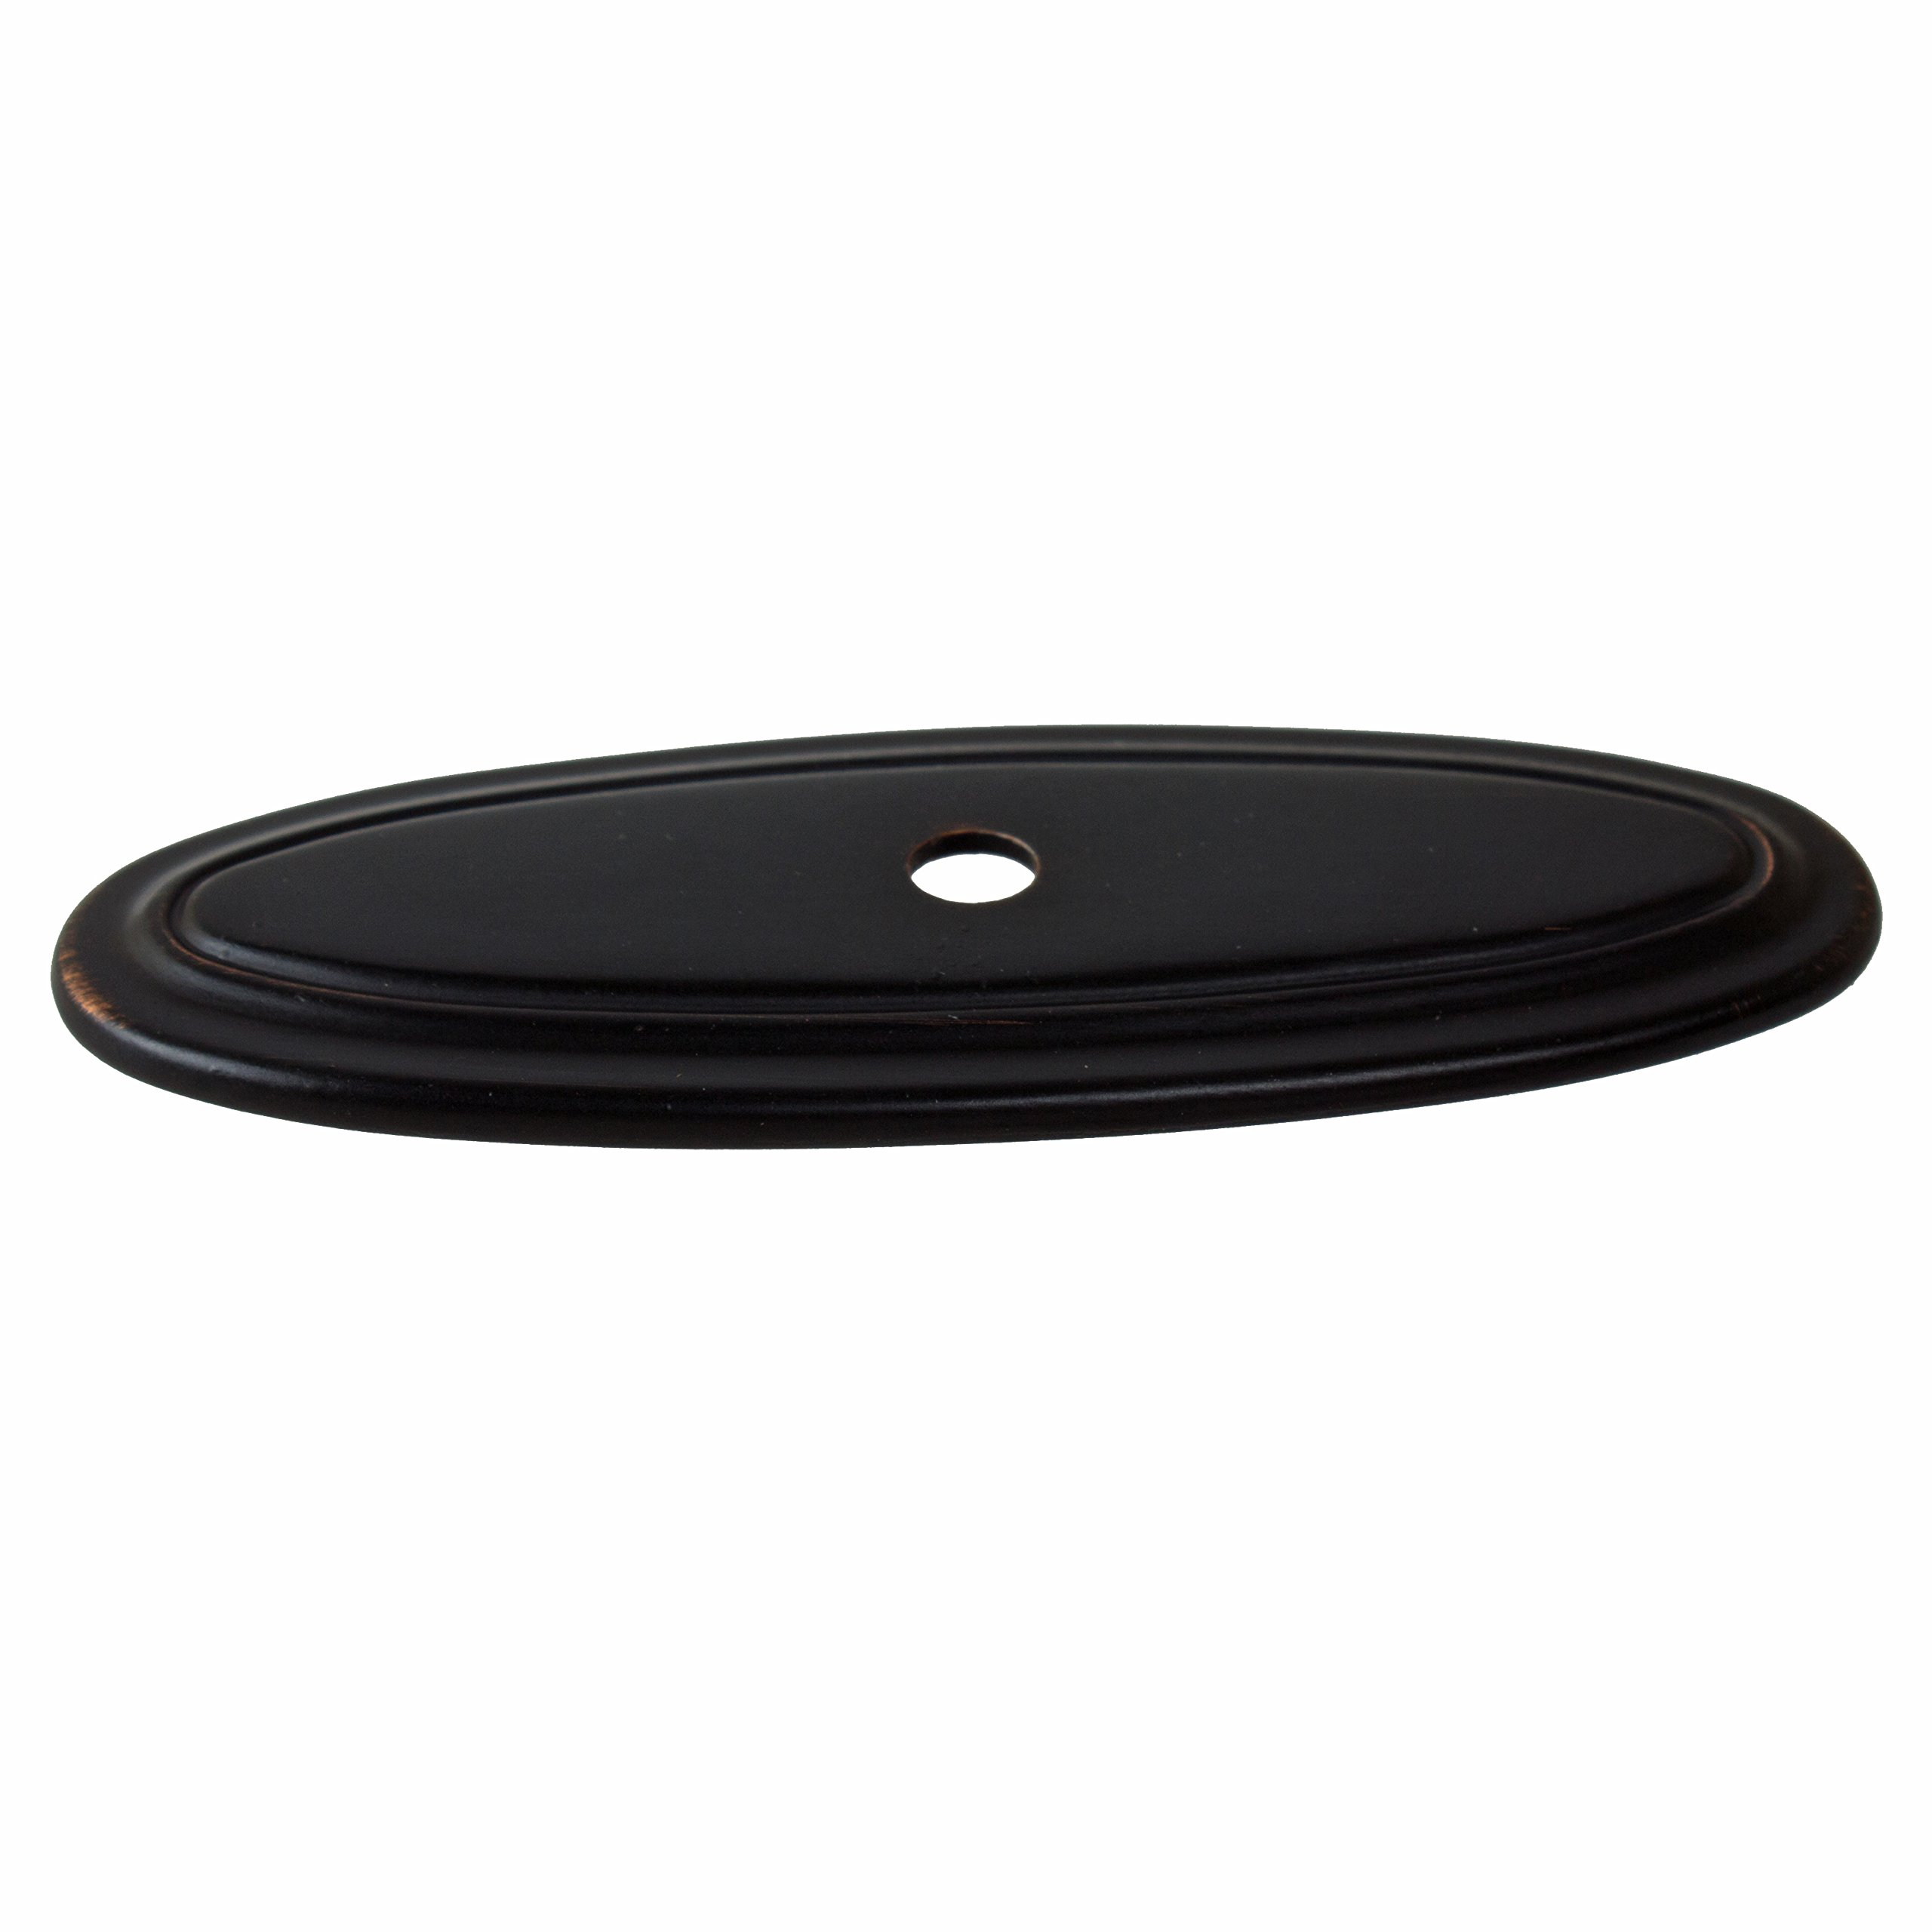 GlideRite Hardware 1034-ORB-50 Thin Oblong Ring Cabinet Back Plate, 50 Pack, 3'', Oil Rubbed Bronze by GlideRite Hardware (Image #2)